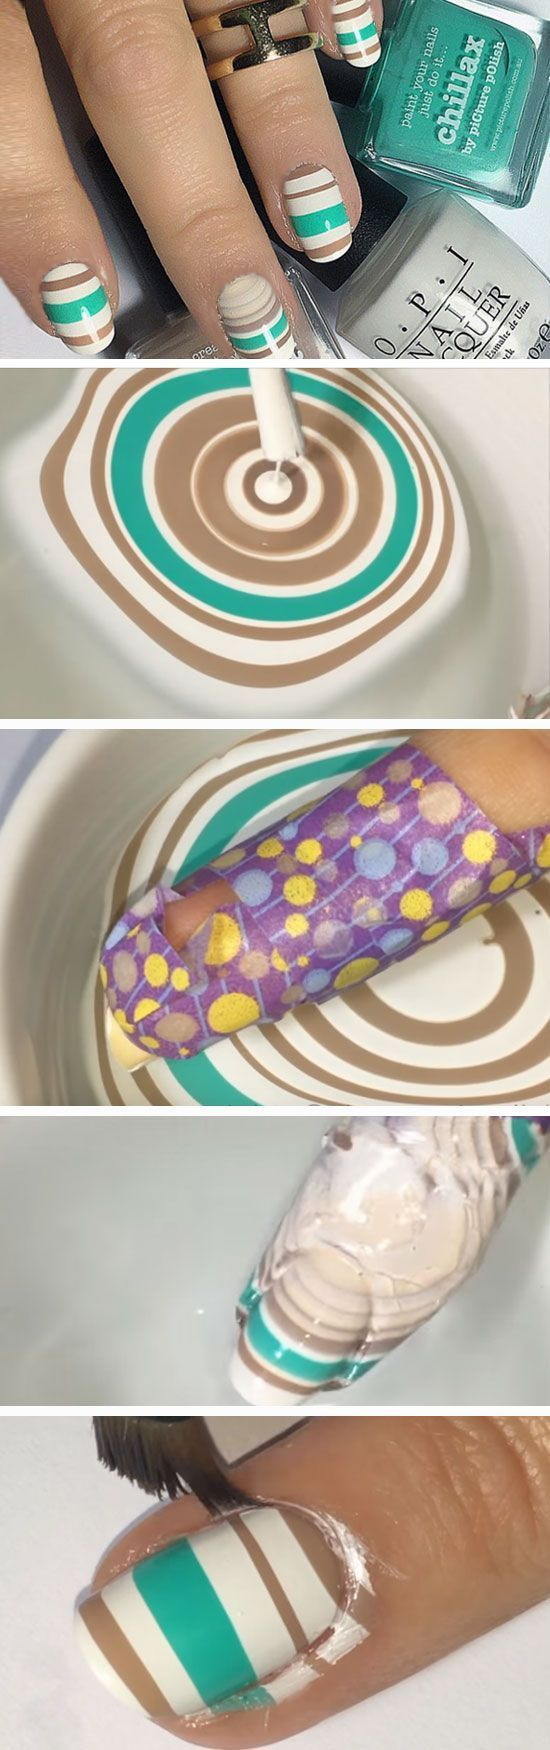 Watermarble Lines | Click Pic for 22 Easy Spring Nail Designs for Short Nails 2016 | DIY Beach Nail Art Ideas for Teens: